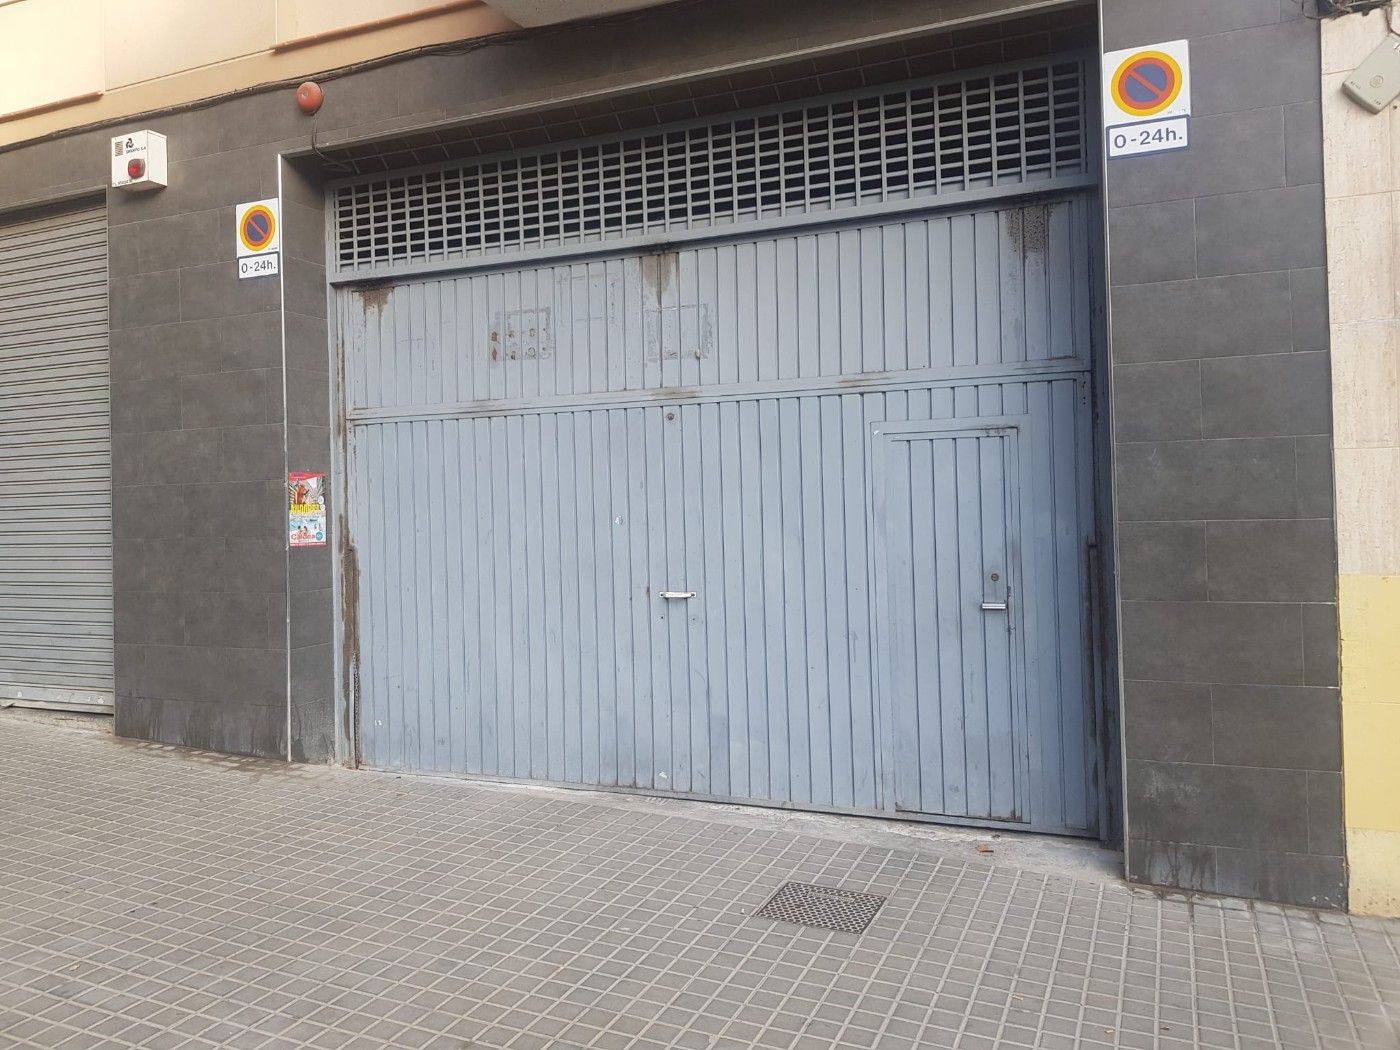 Car parking in Carrer pablo iglesias, 16